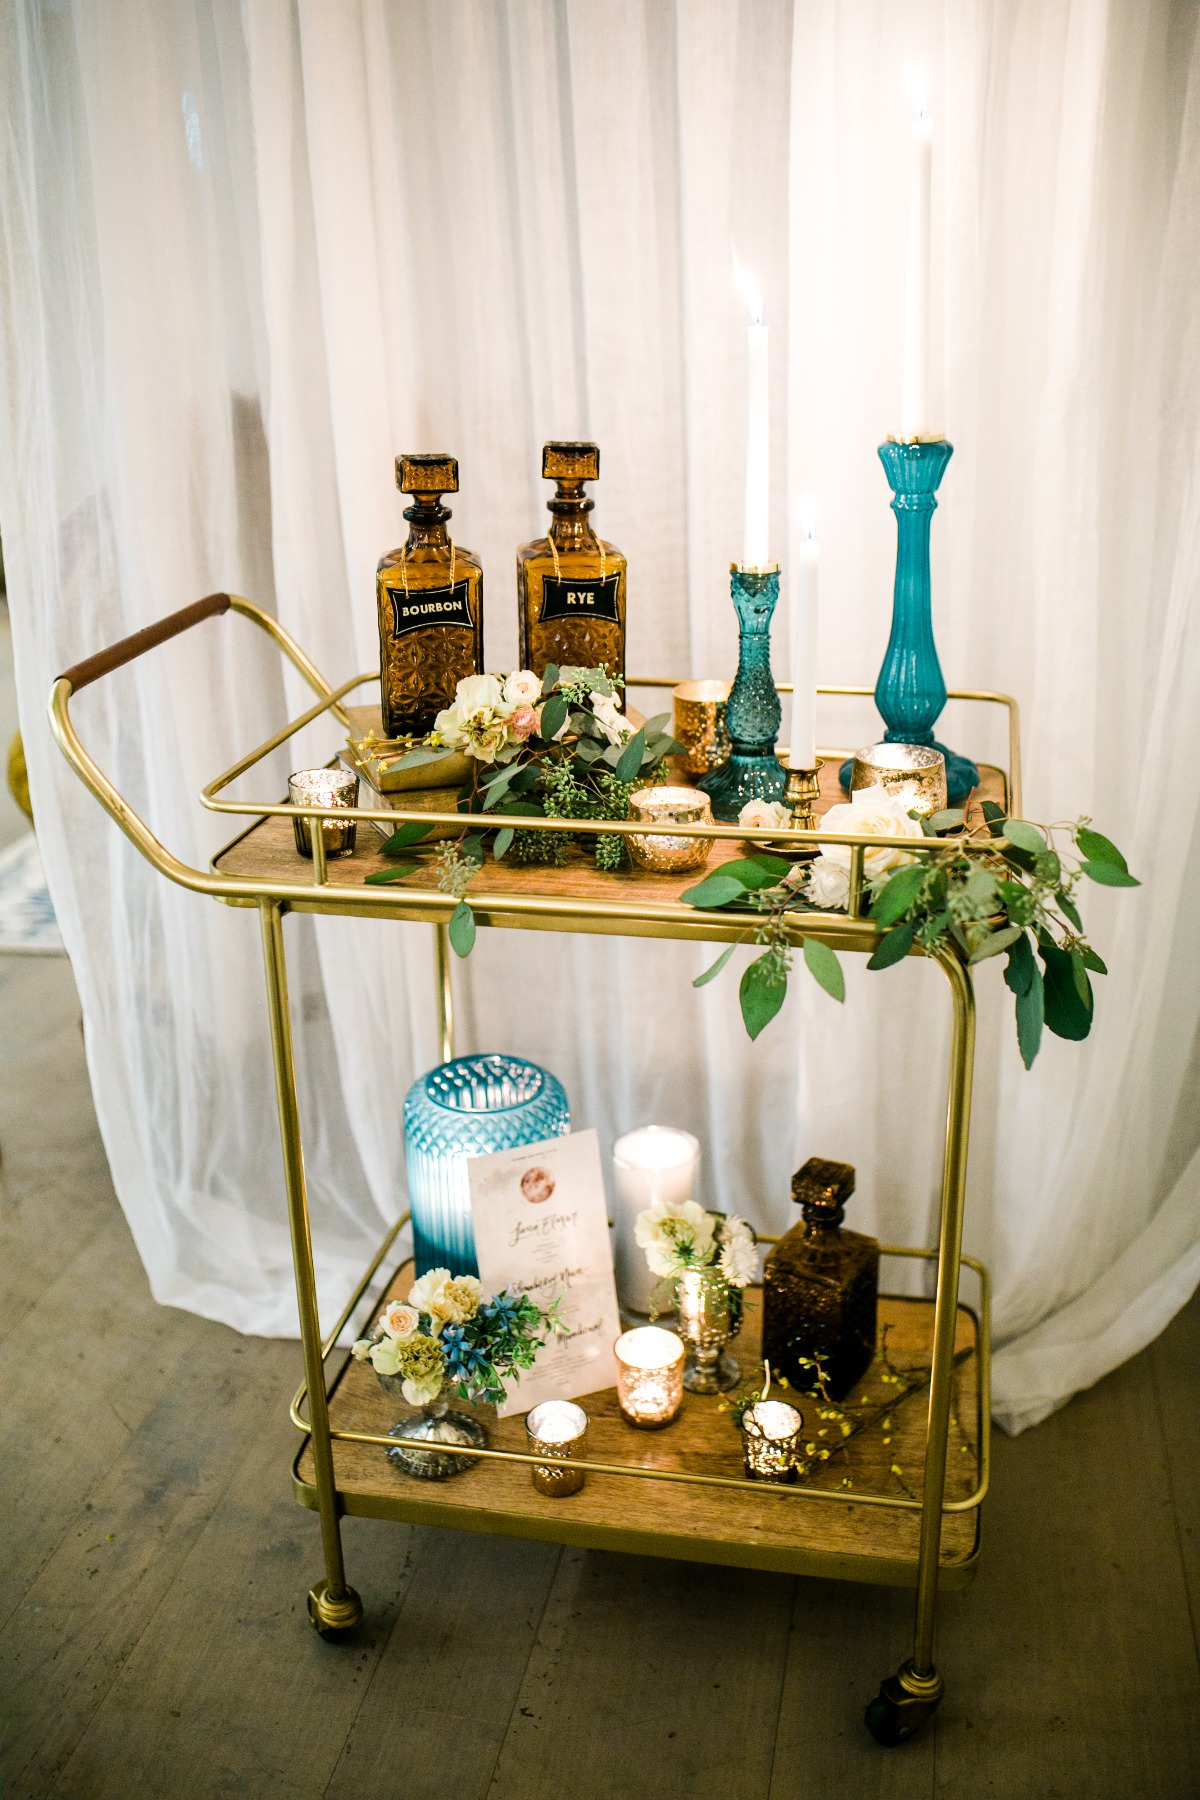 Vintage bar cart decor